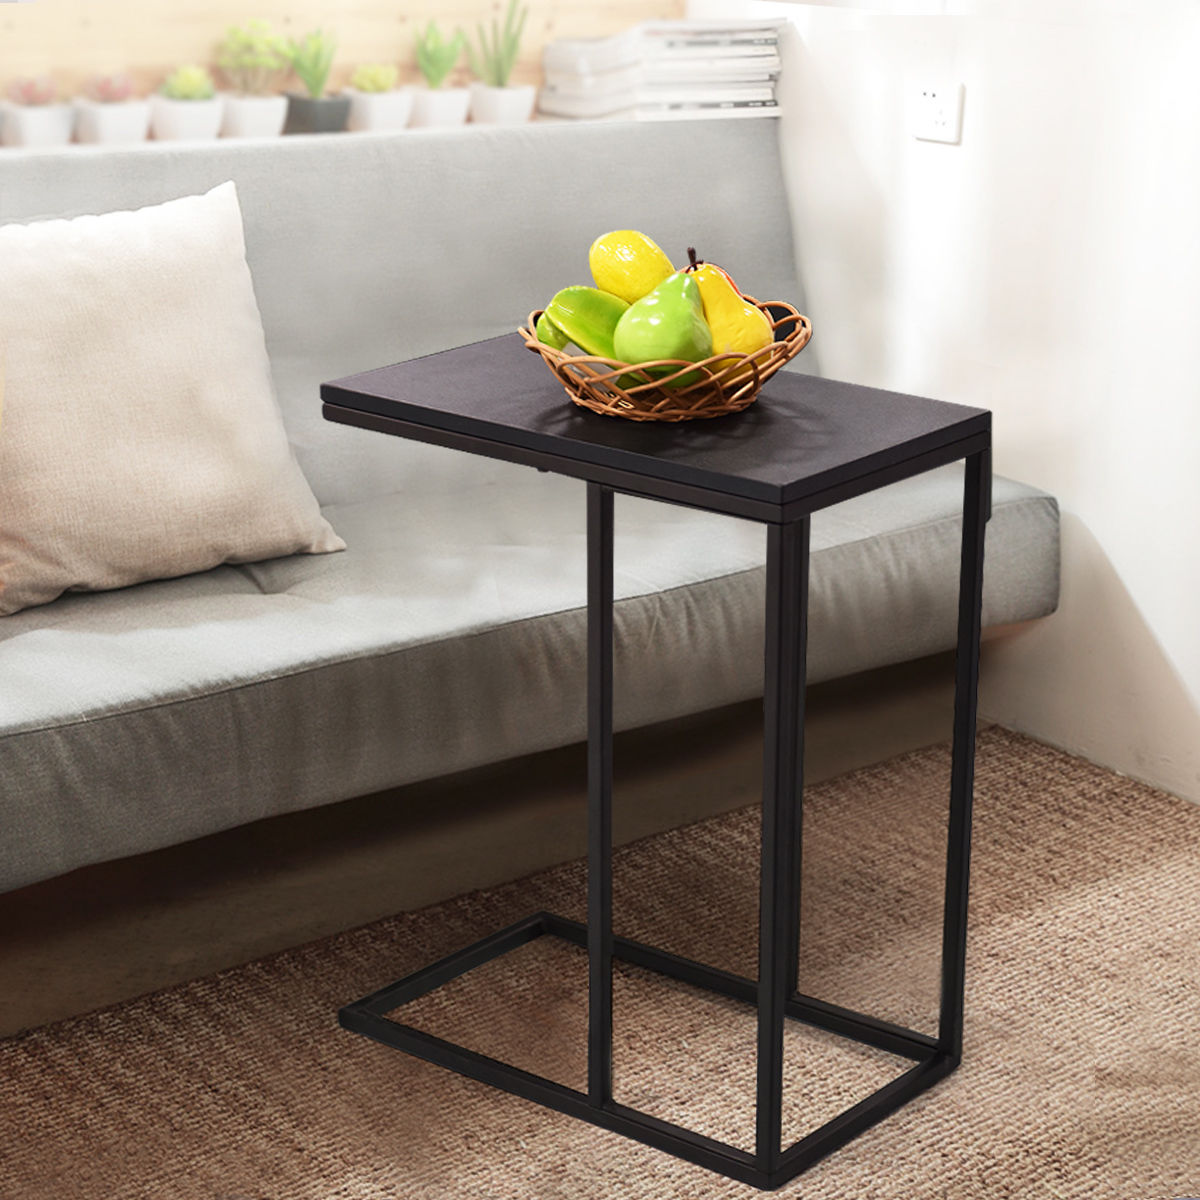 Sofa Portable Table How To Replace Cushions With Foam Giantex Coffee Tray Side End Modern